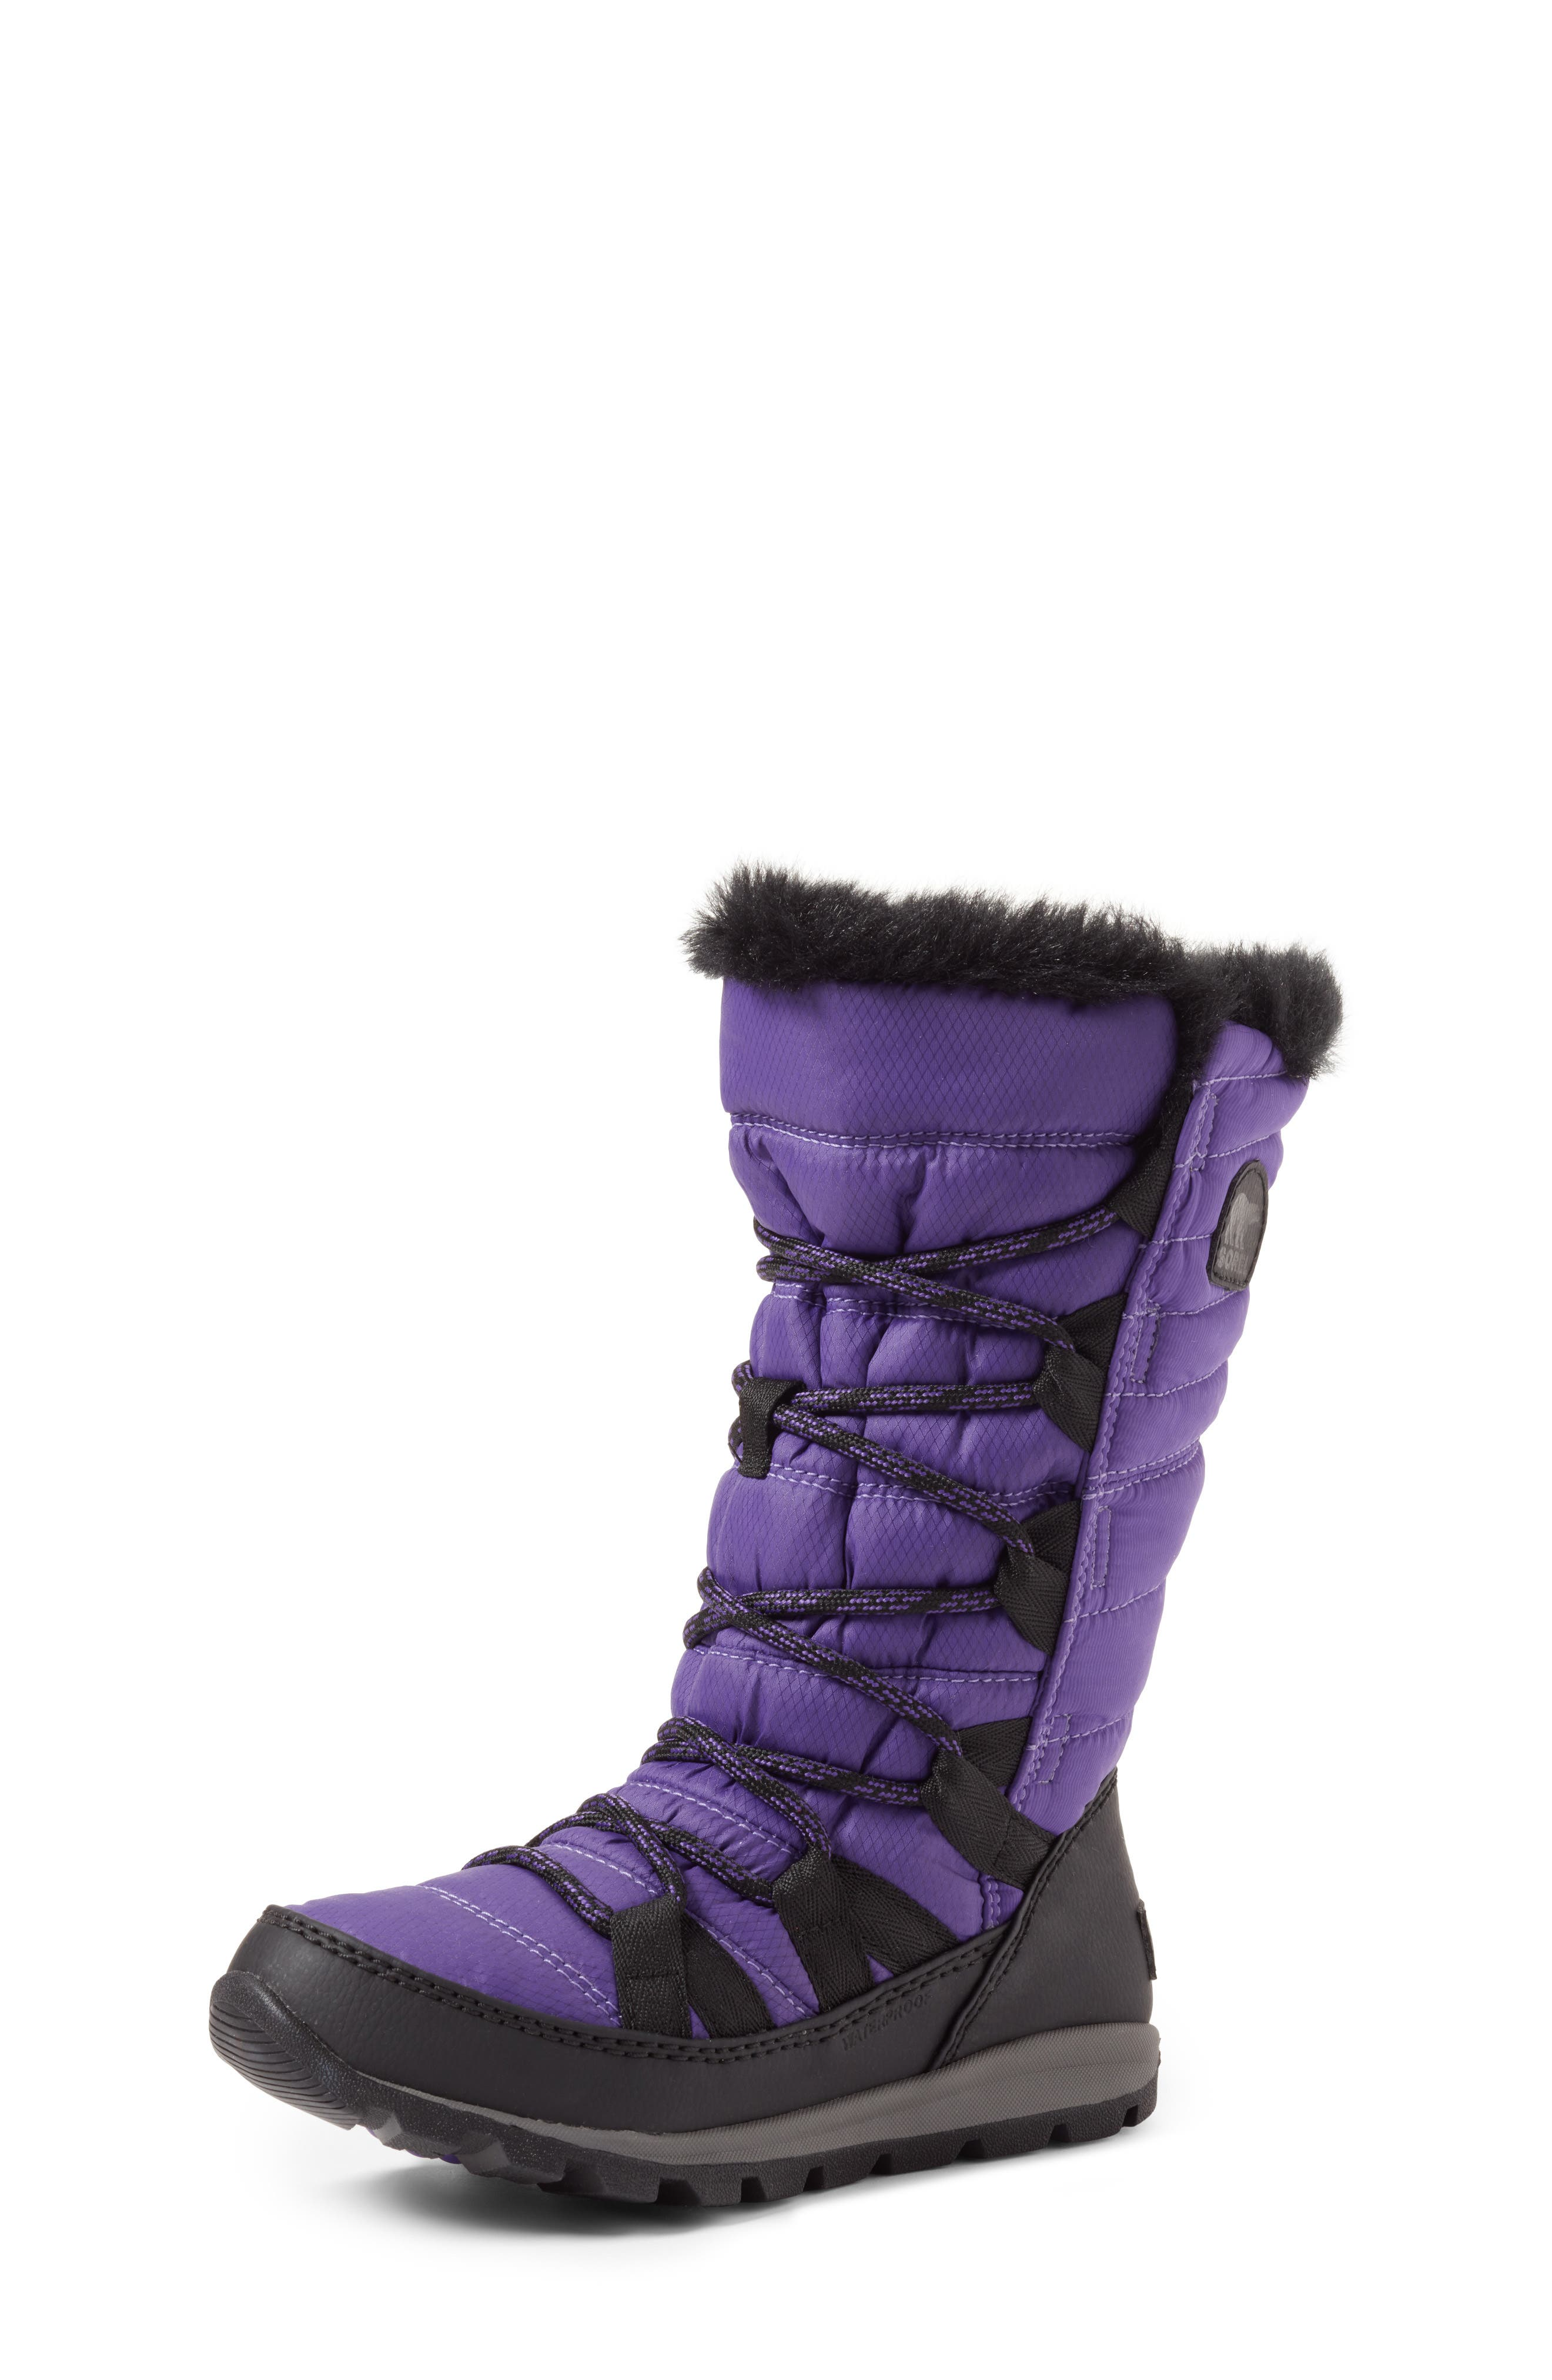 SOREL Whitney Waterproof Insulated Snow Boot (Little Kid & Big Kid)